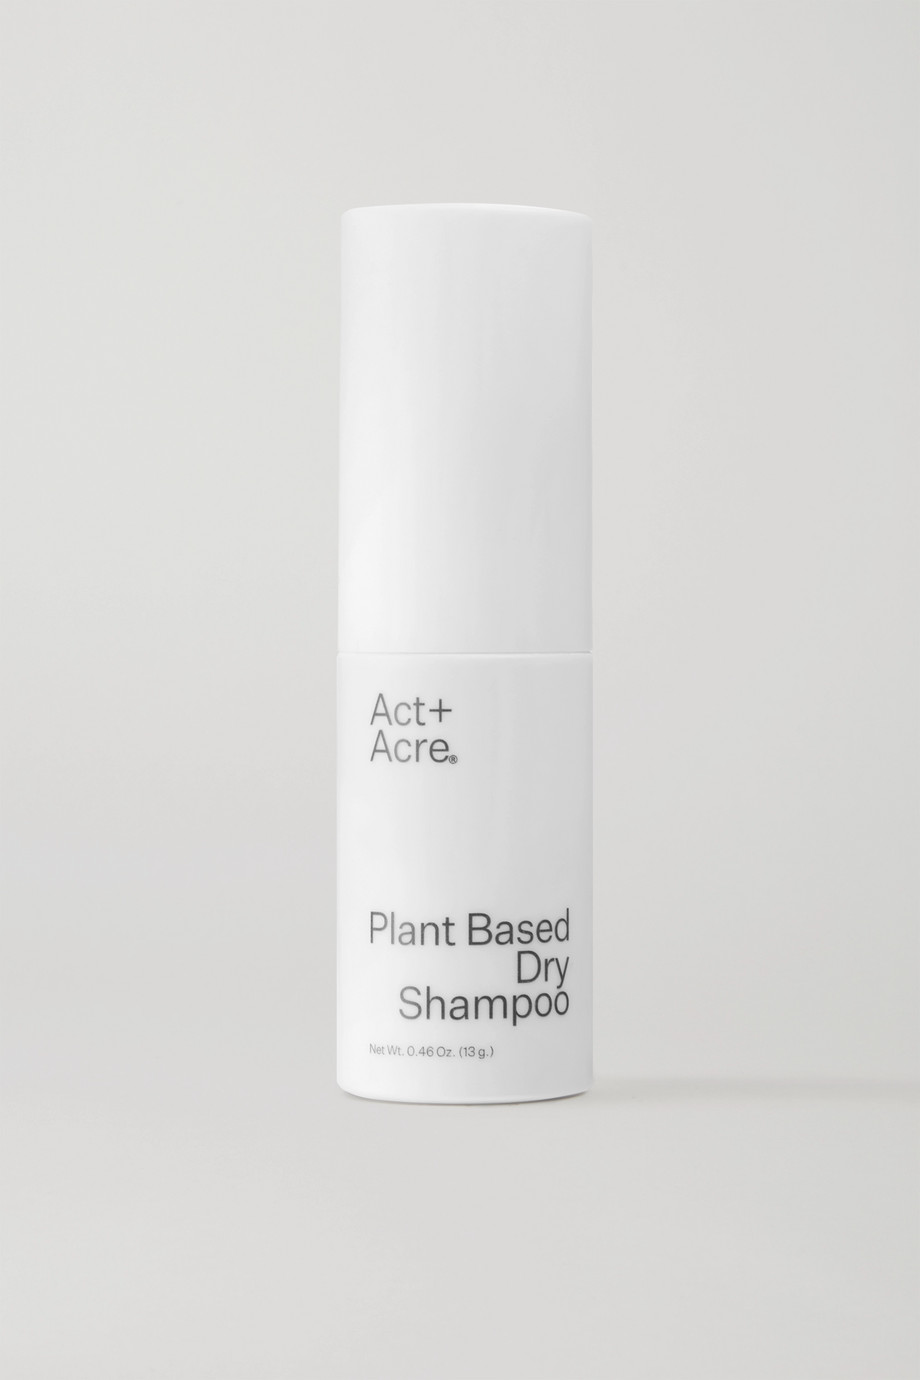 Act + Acre Plant Based Dry Shampoo, 13g